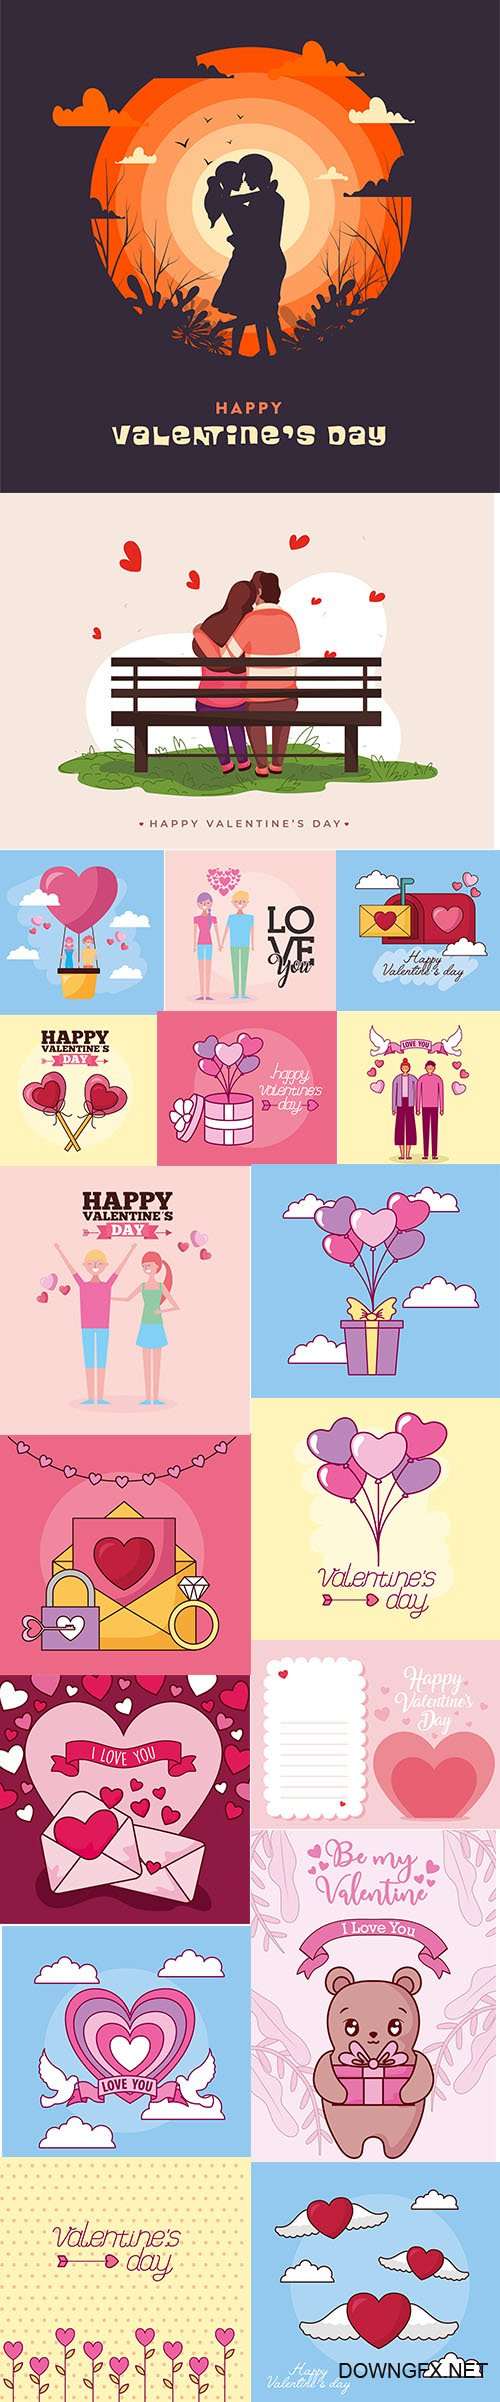 Set of Romantic Valentines Day Illustrations Vol 9